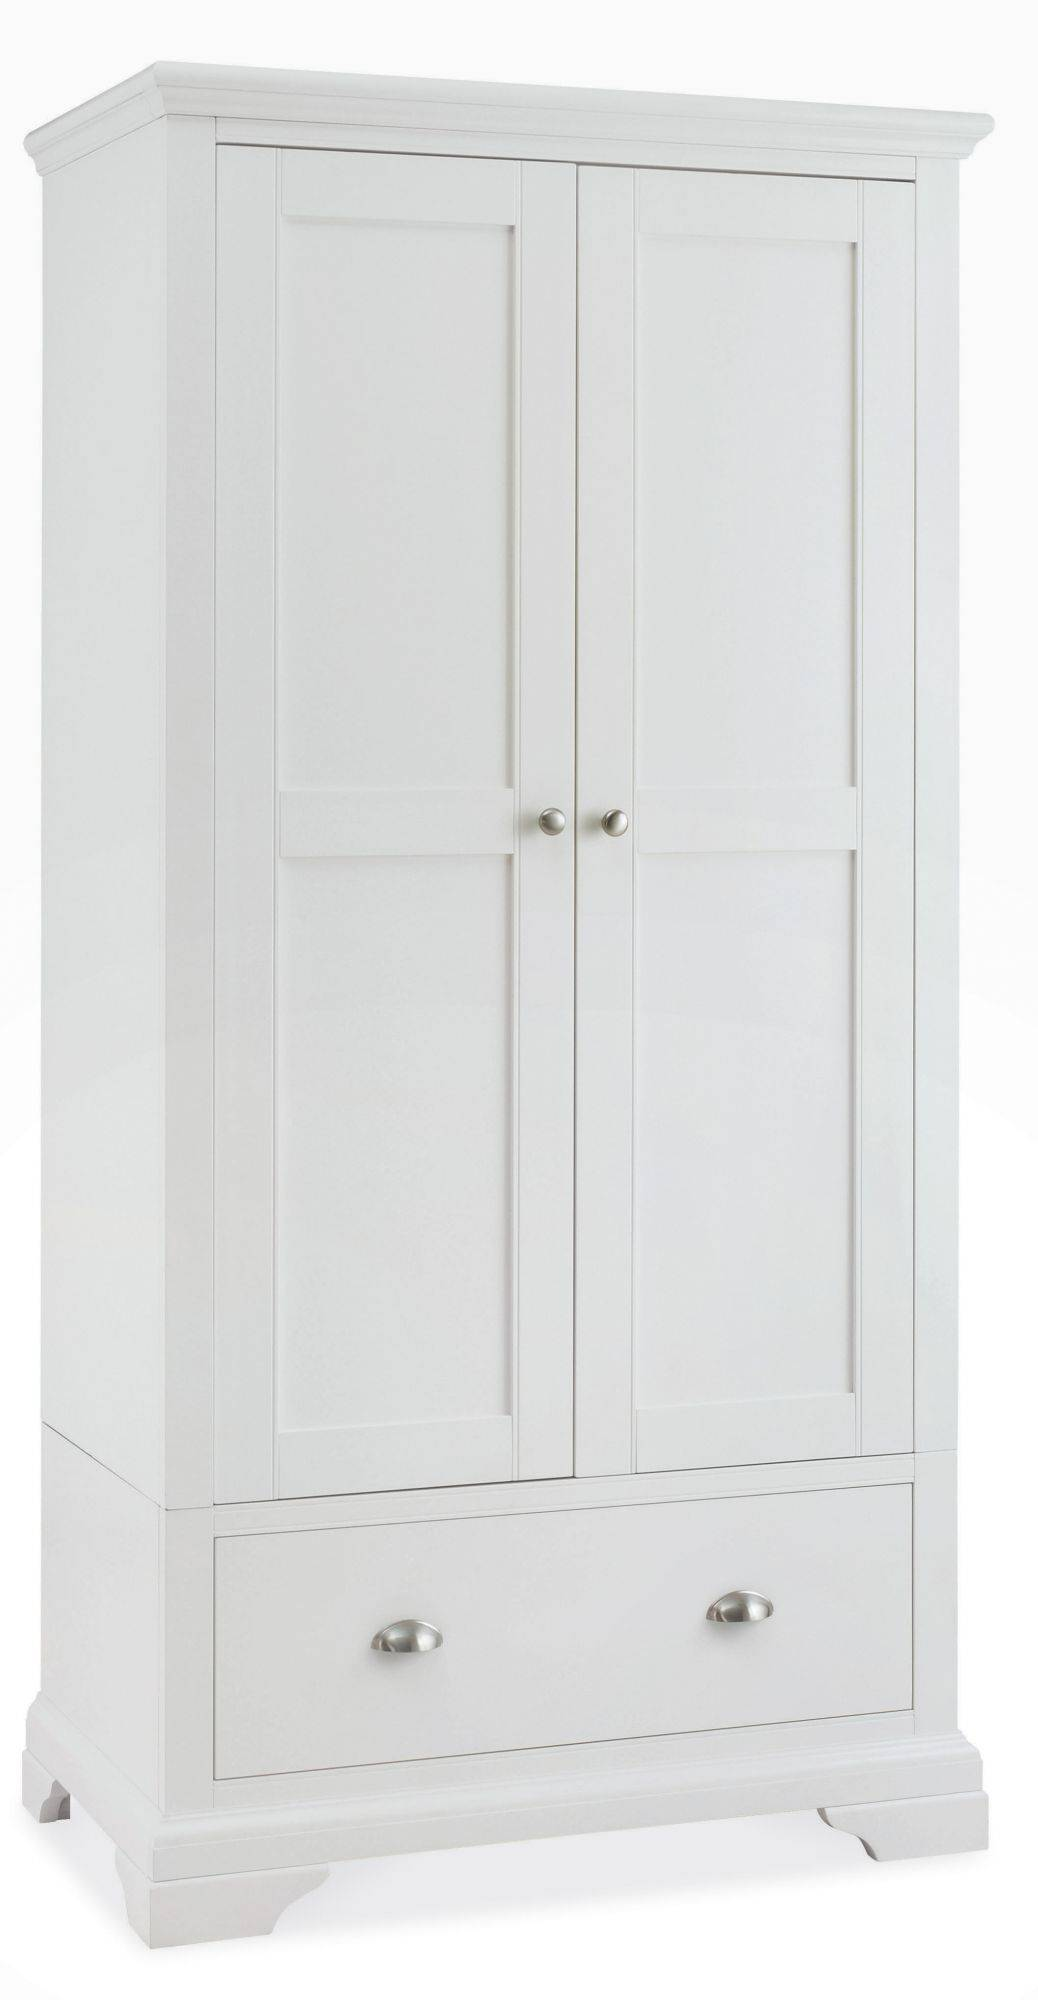 Fairford White Double Wardrobe Bedroom Furniture Hills